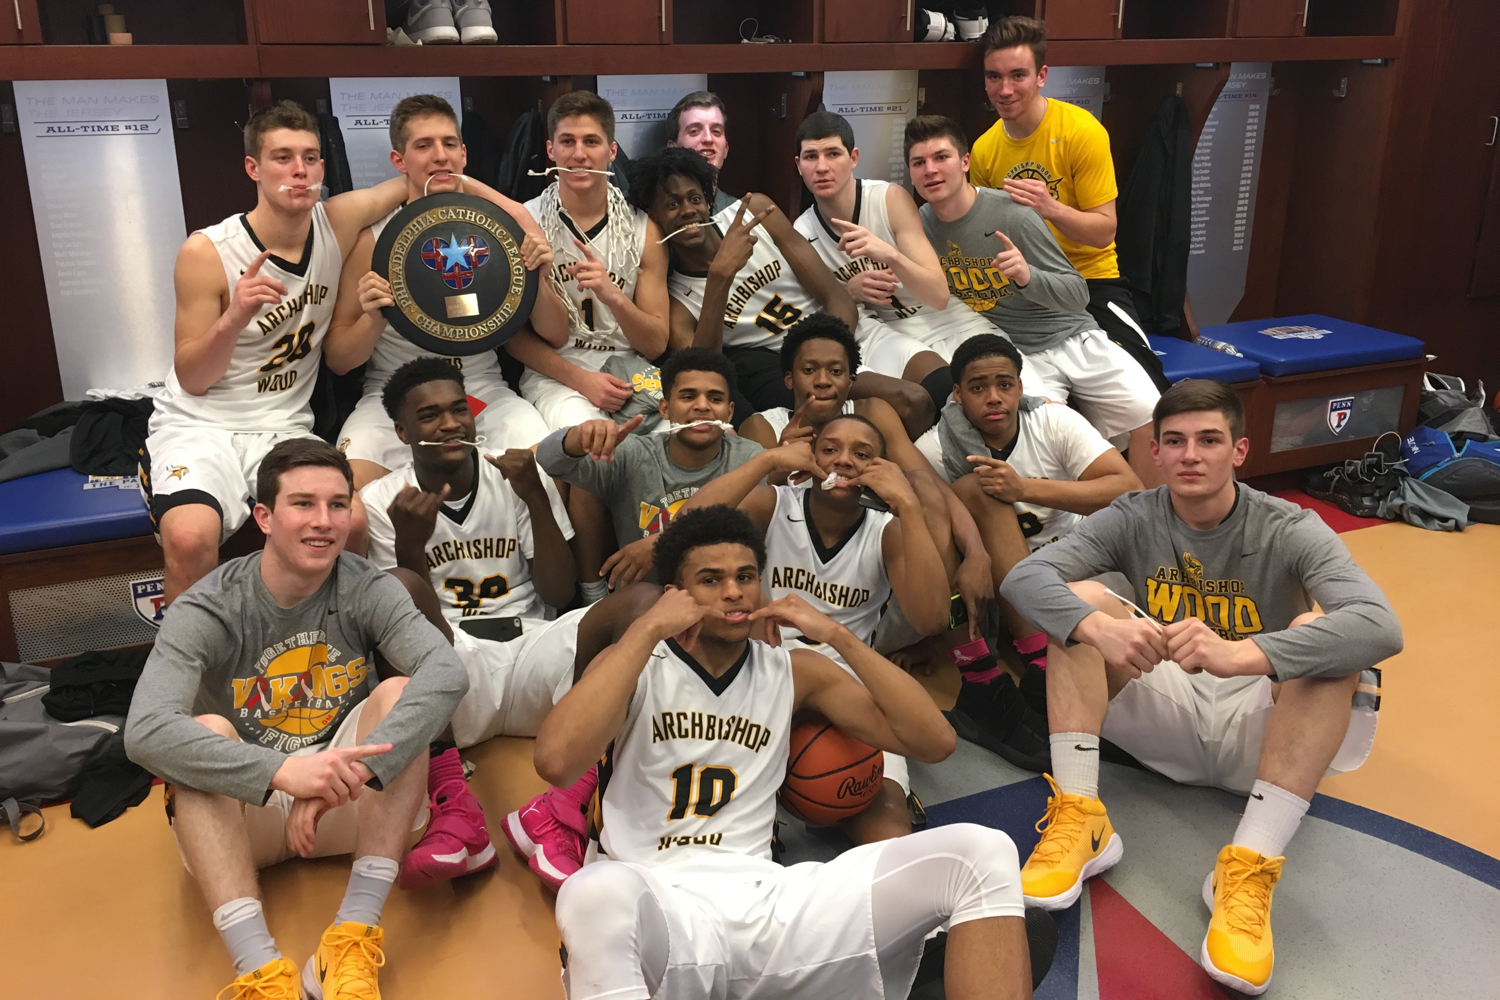 2017 Philadelphia Catholic League Champions - Archbishop Wood Boys Basketball Team